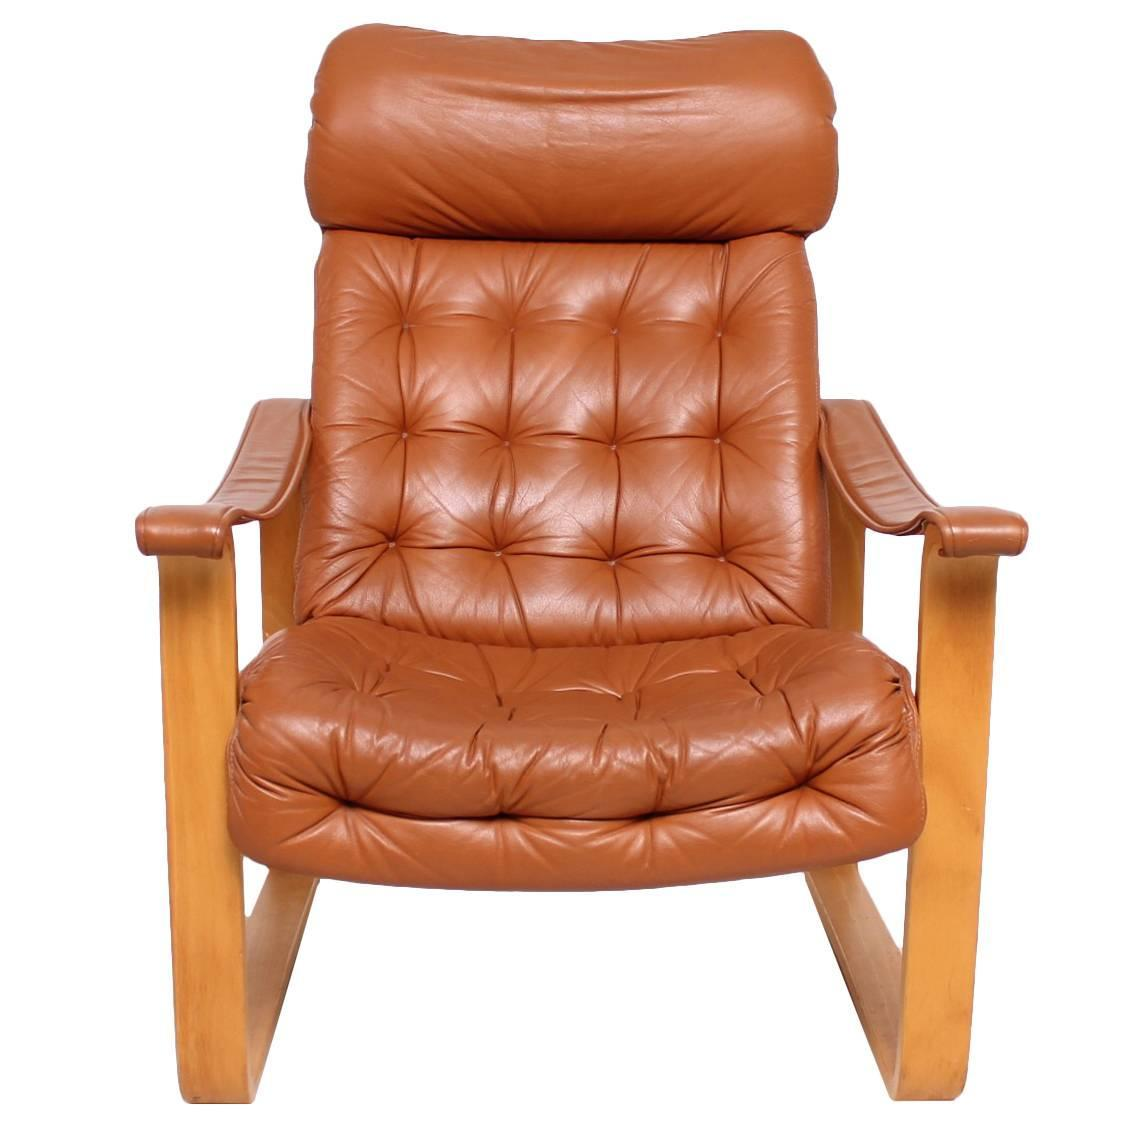 Finland Leather Armchair Mid Century Modern OY BJ